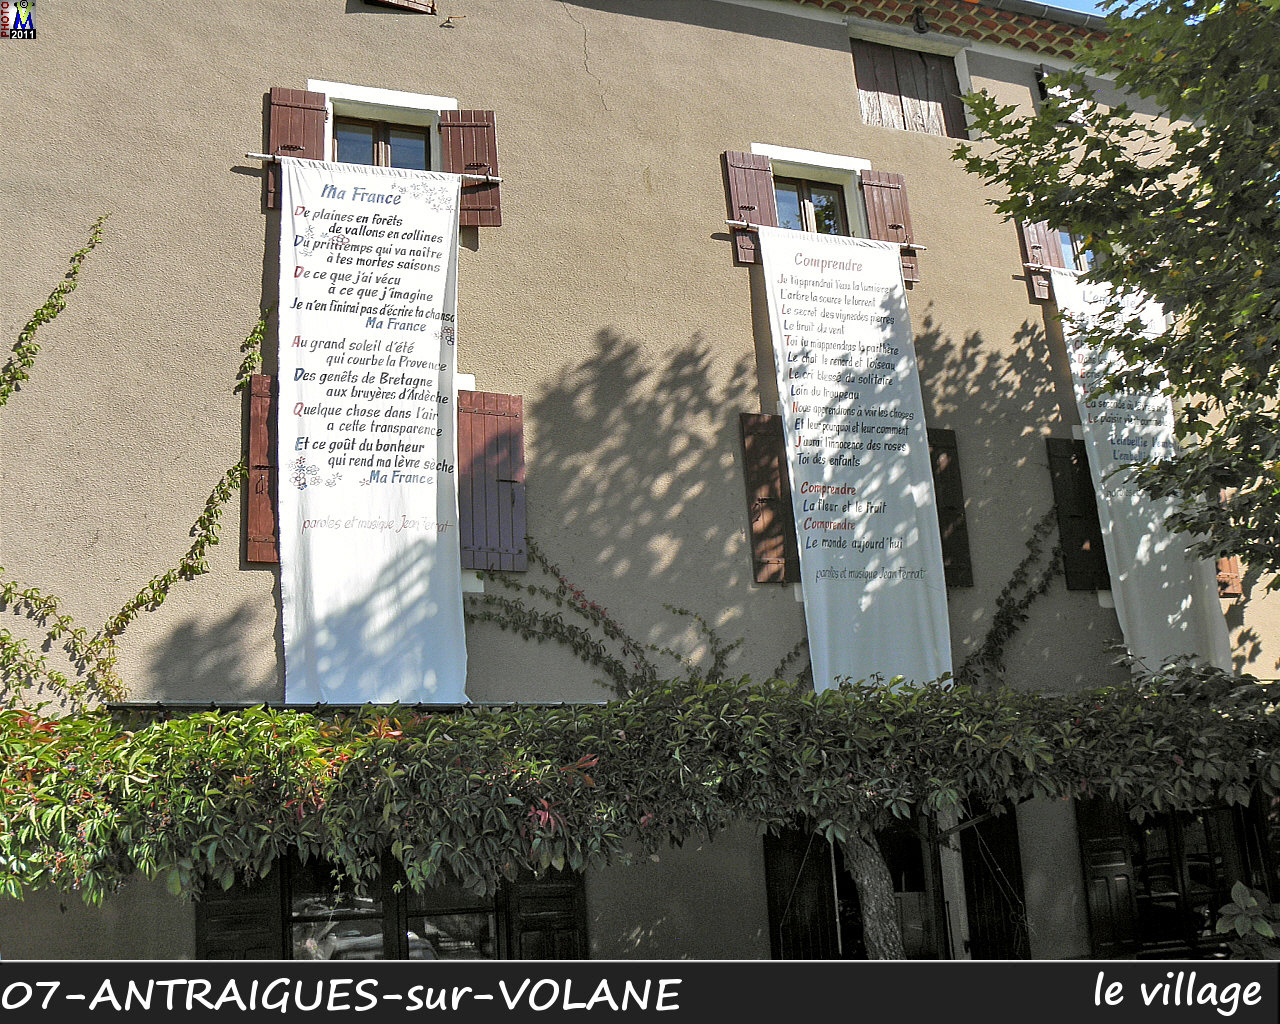 07ANTRAIGUES-VOLANE_village_116.jpg